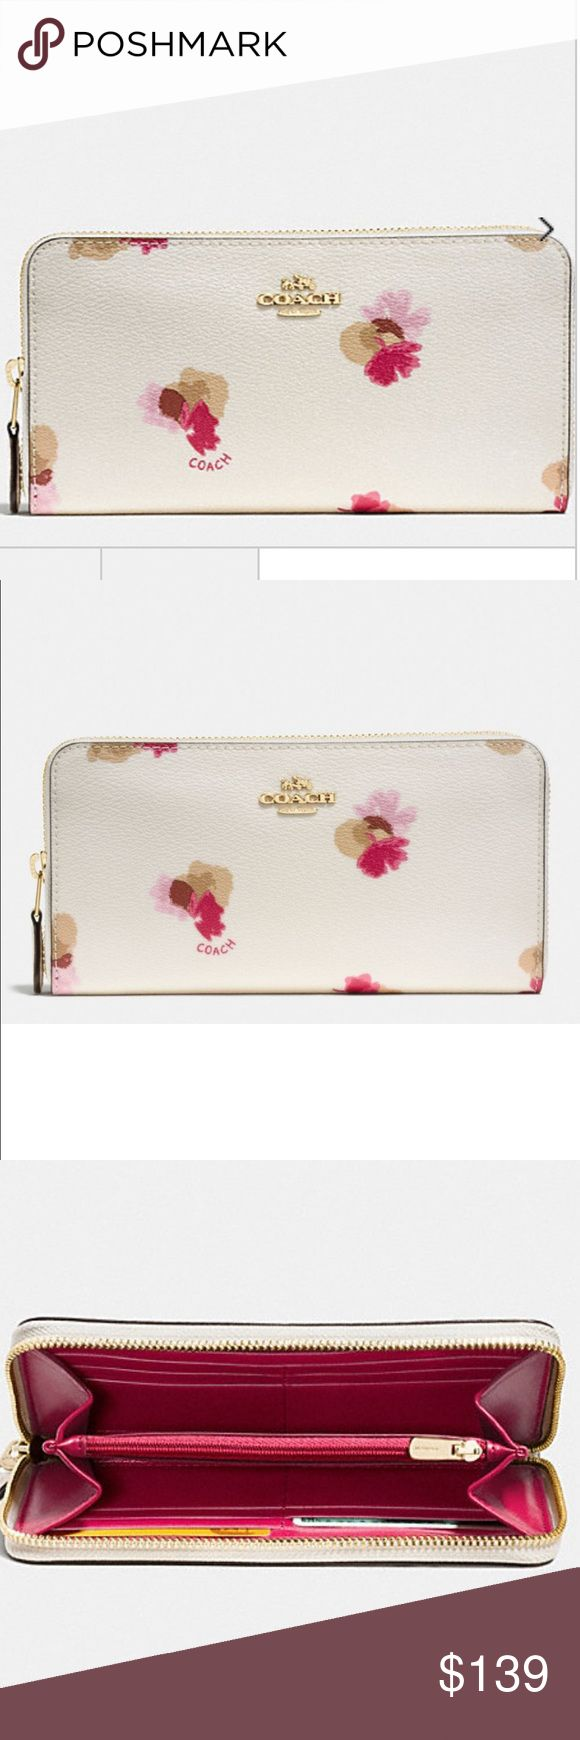 """Sale Host Pick 🌷Coach floral  Accordion wallet Best in bag Host Pick🌷🌱🌷🌱🌷Perfect for the summer, this Coach accordion wallet has a beautiful twist with its floral print making it perfect for the summer. A trendy, feminine with a romantic flair.  Features: Printed coated canvas Twelve credit card slots Full-length bill compartments Zip coin pocket Zip-around closure 7 1/2"""" (L) x 4"""" (H) Fits all phone sizes up to an iPhone 7 Plus and Samsung S7 Edge Coach Bags Wallets"""